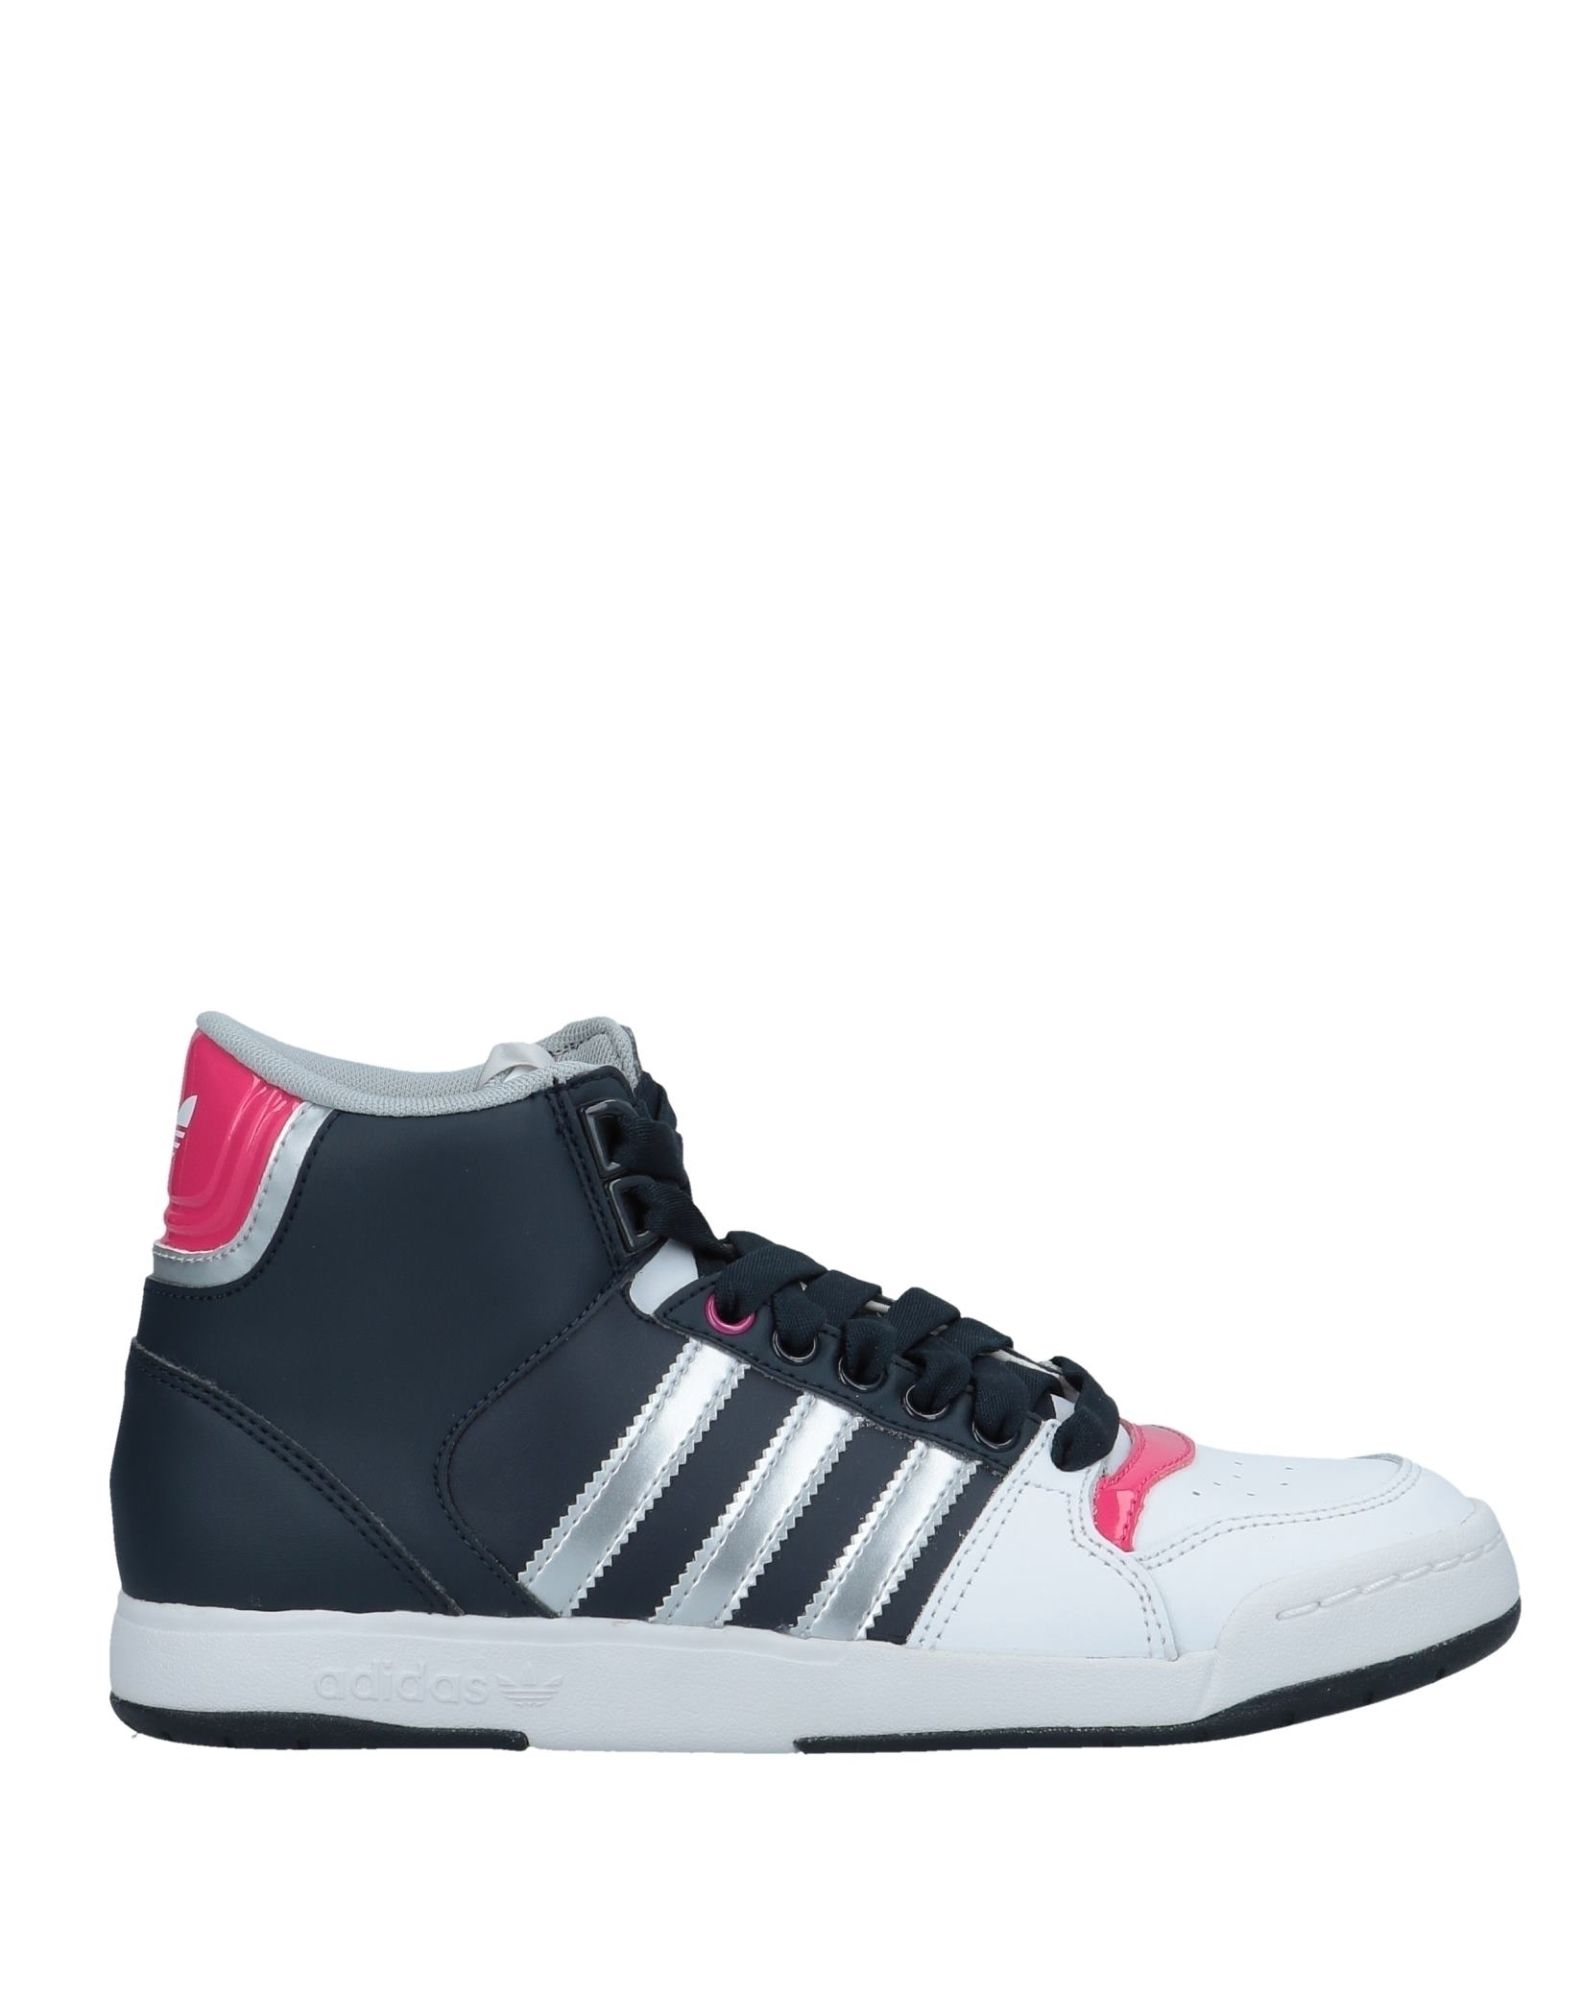 Sneakers Adidas Originals Donna - 11554414BE